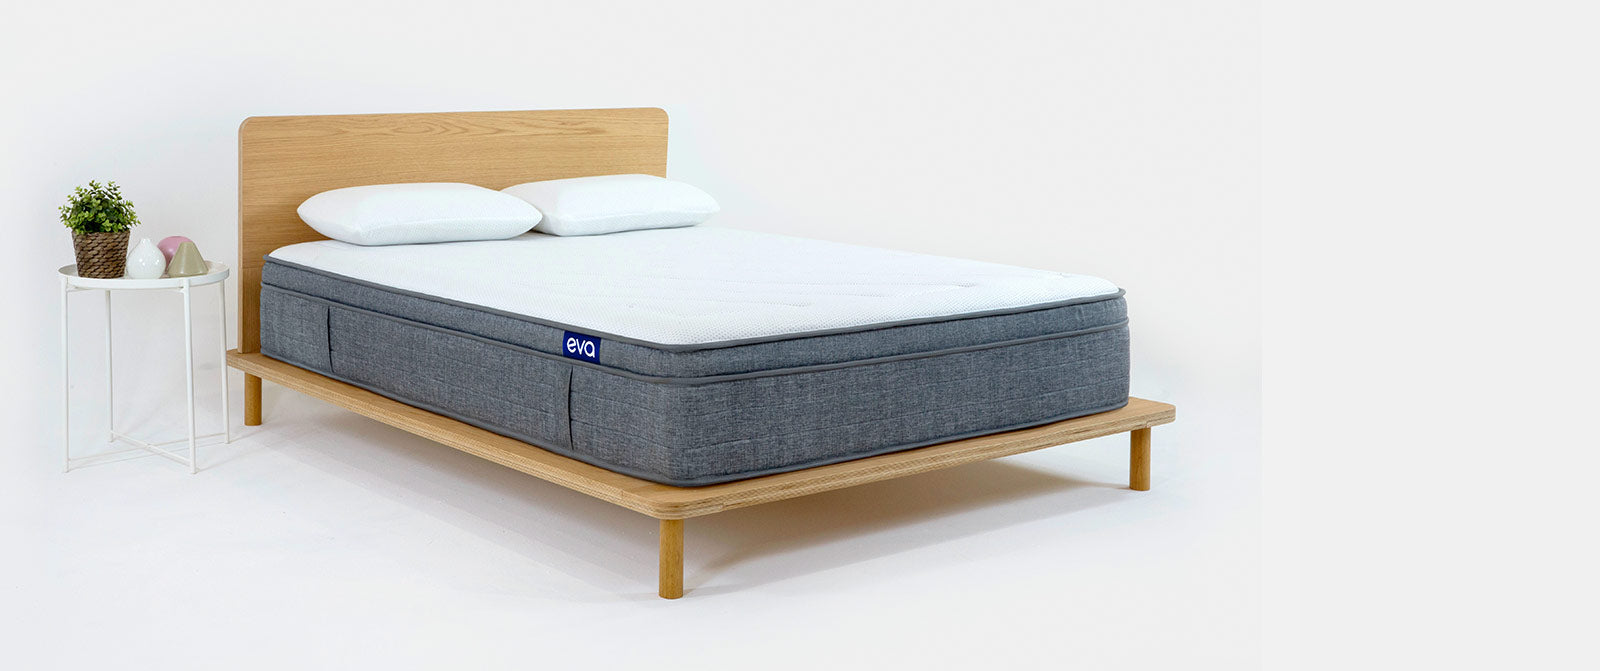 The Eva Mattress